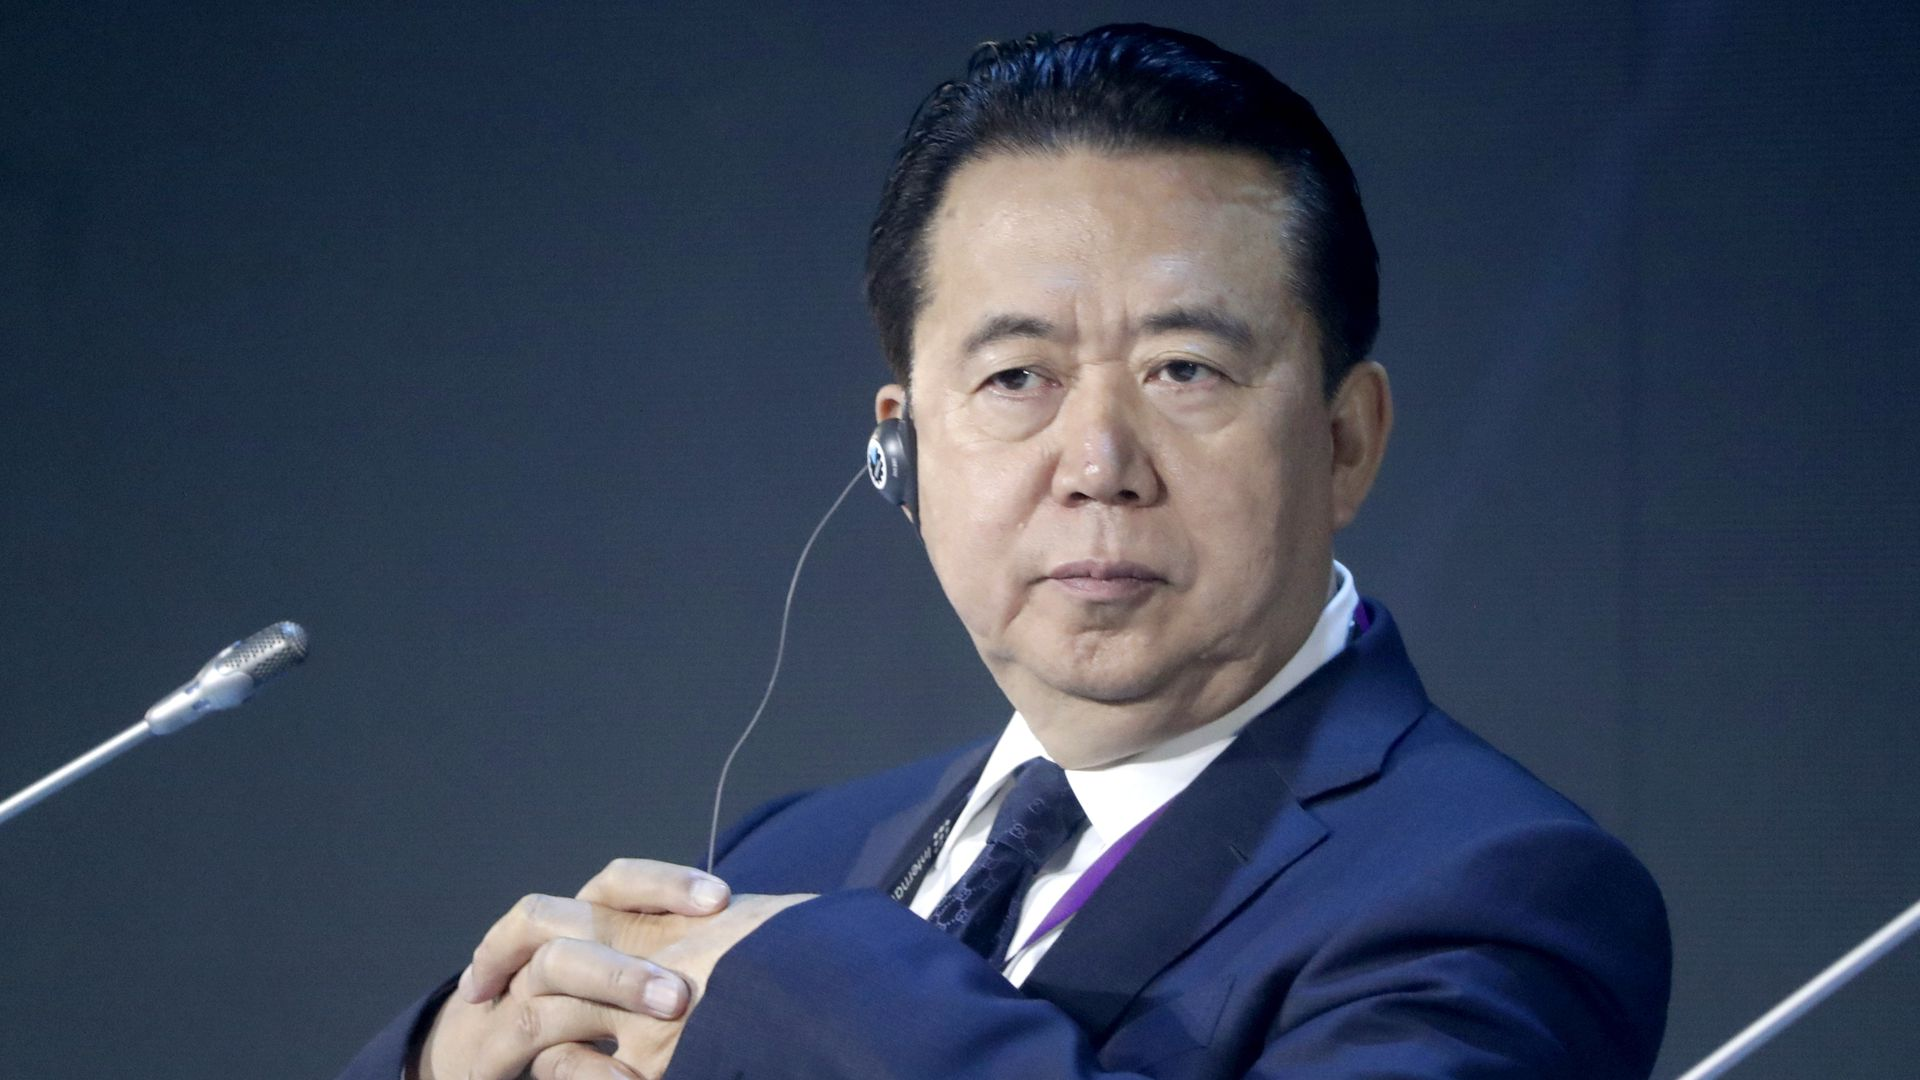 Interpol President Meng Hongwei. Photo: Mikhail Metzel/TASS via Getty Images